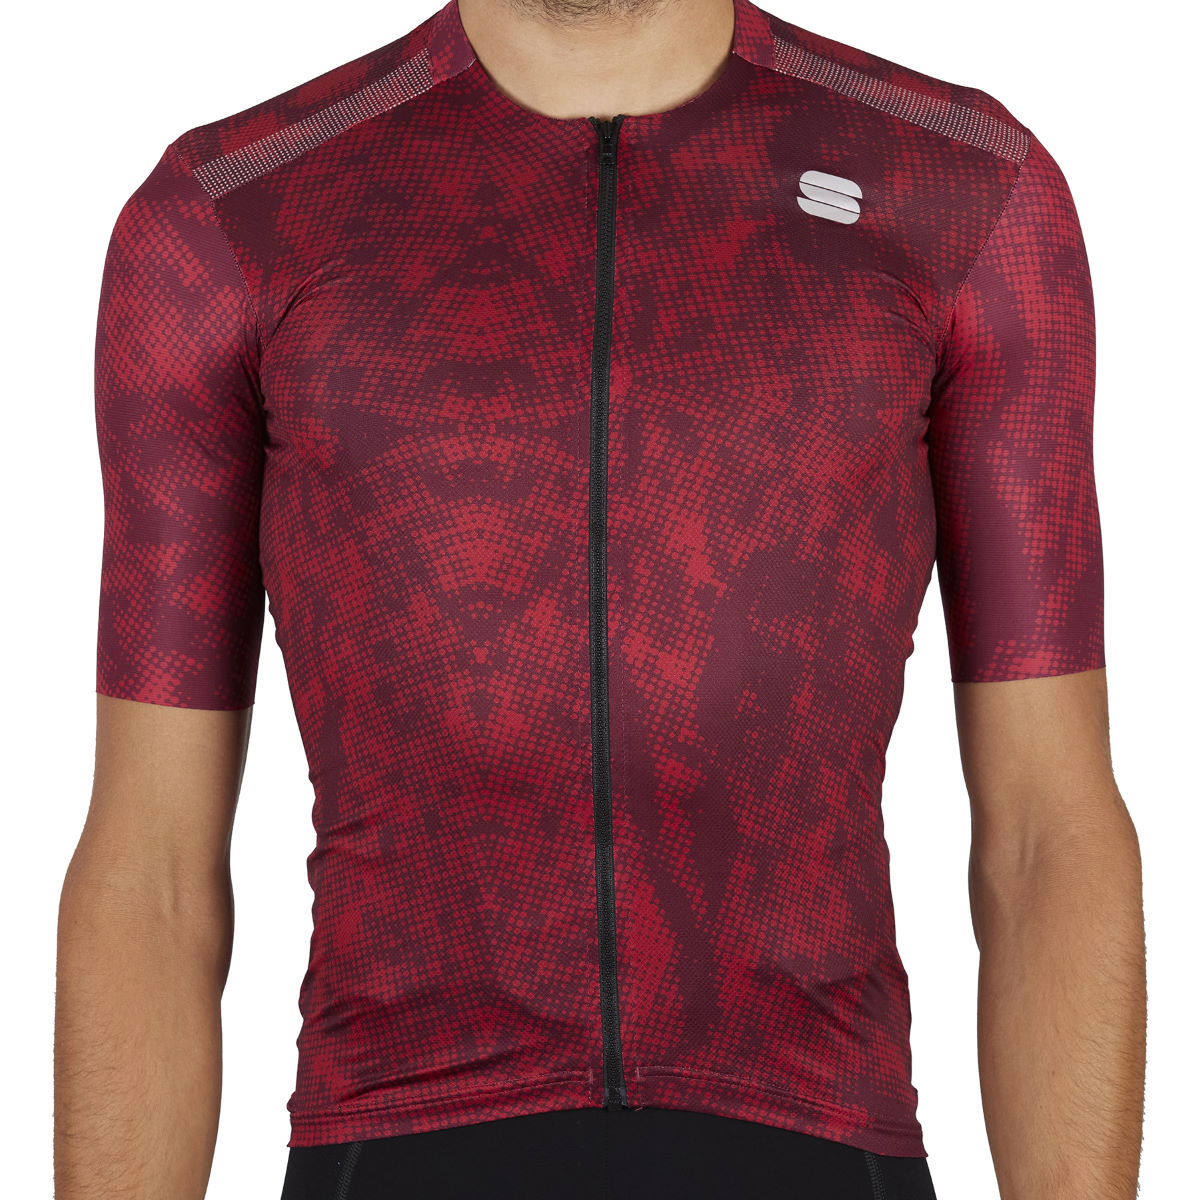 Sportful Escape Supergiara Cycling Jersey - S Red Wine  Jerseys